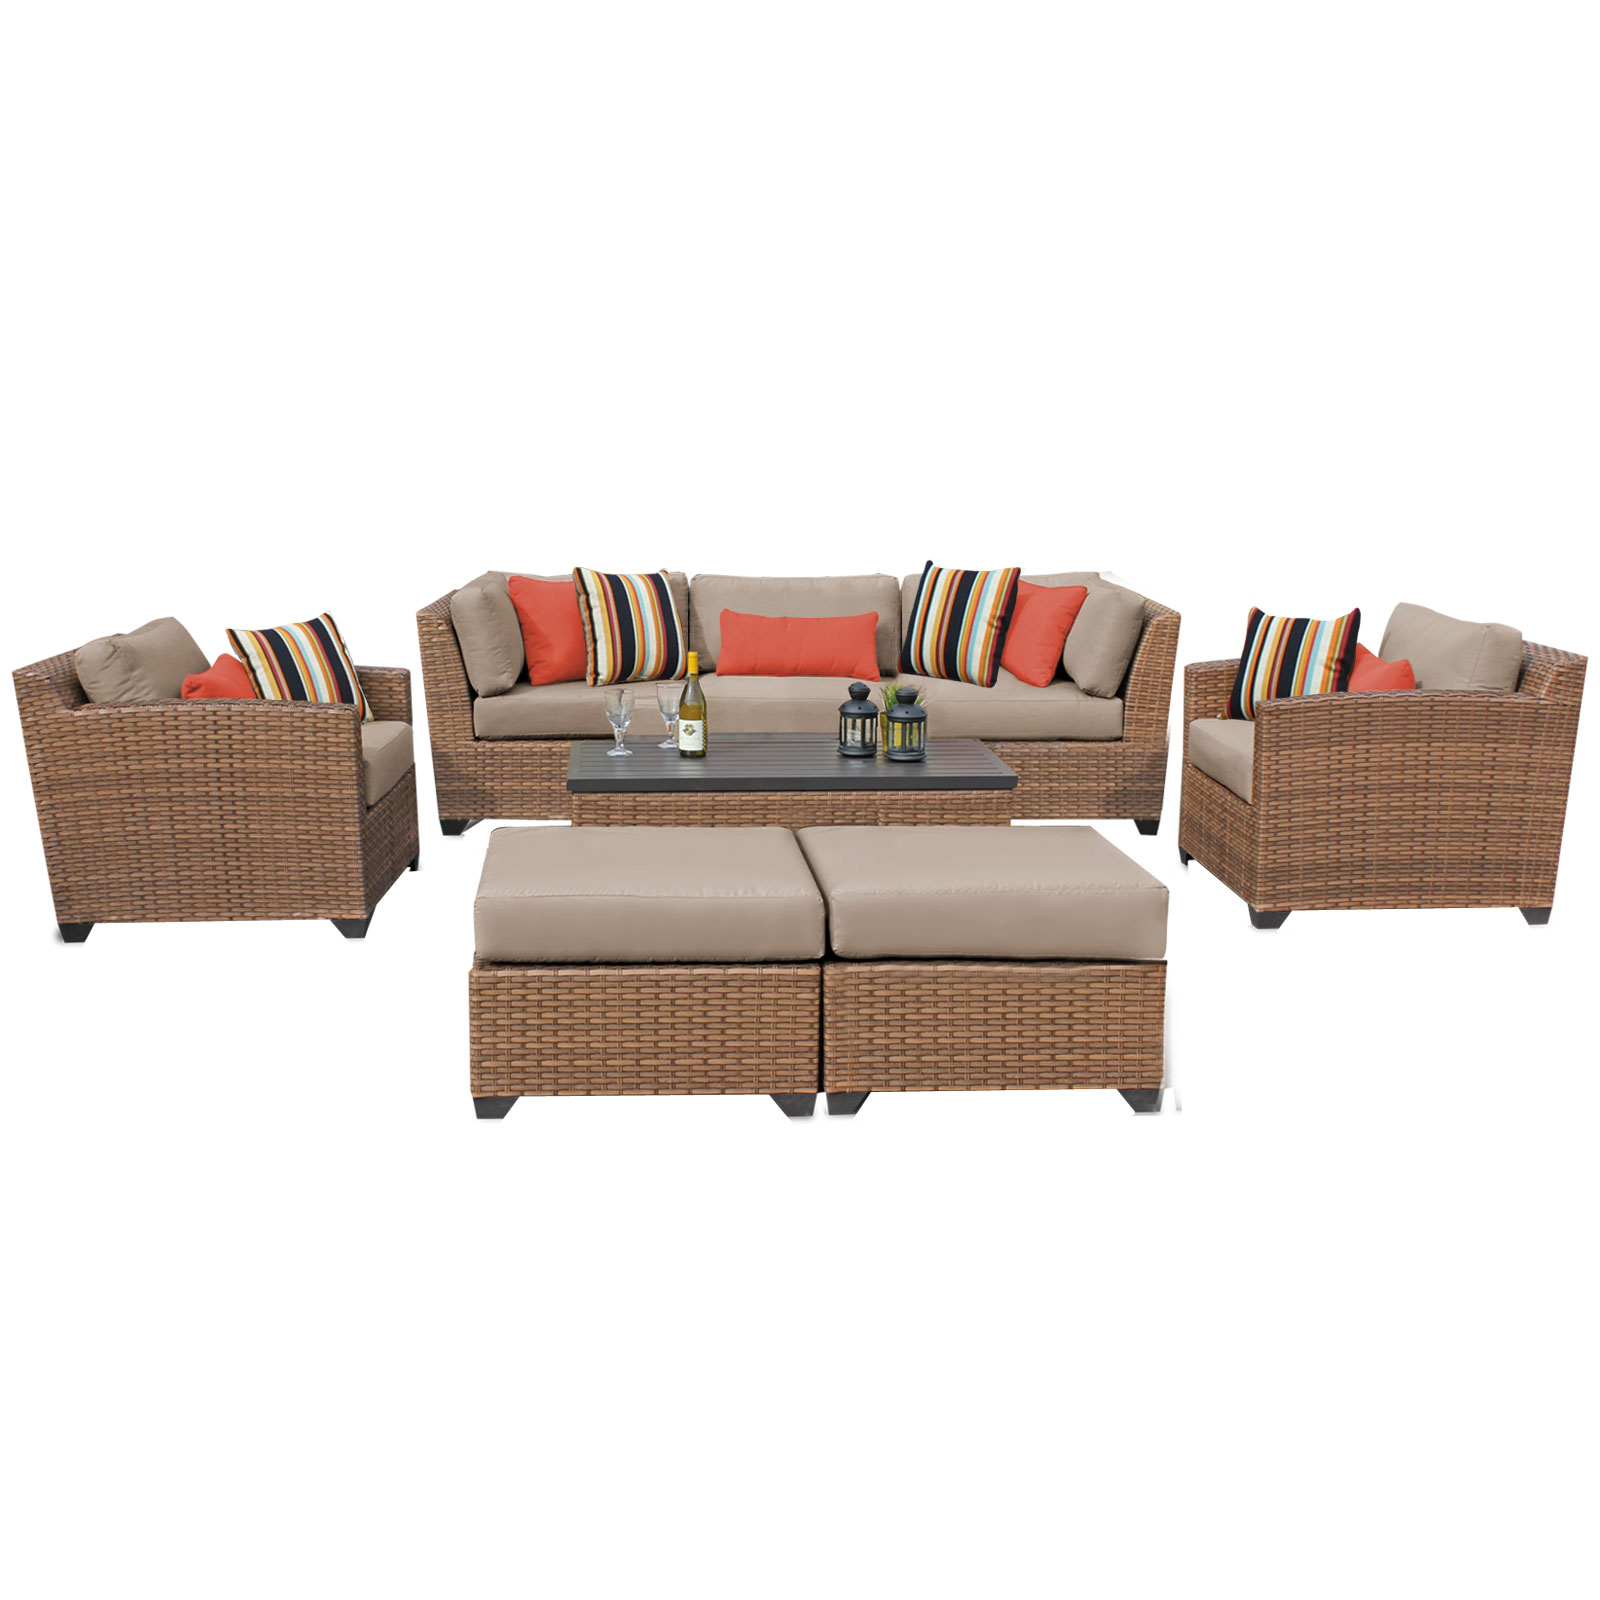 Tuscan 8 Piece Outdoor Wicker Patio Furniture Set 08c by TK Classics